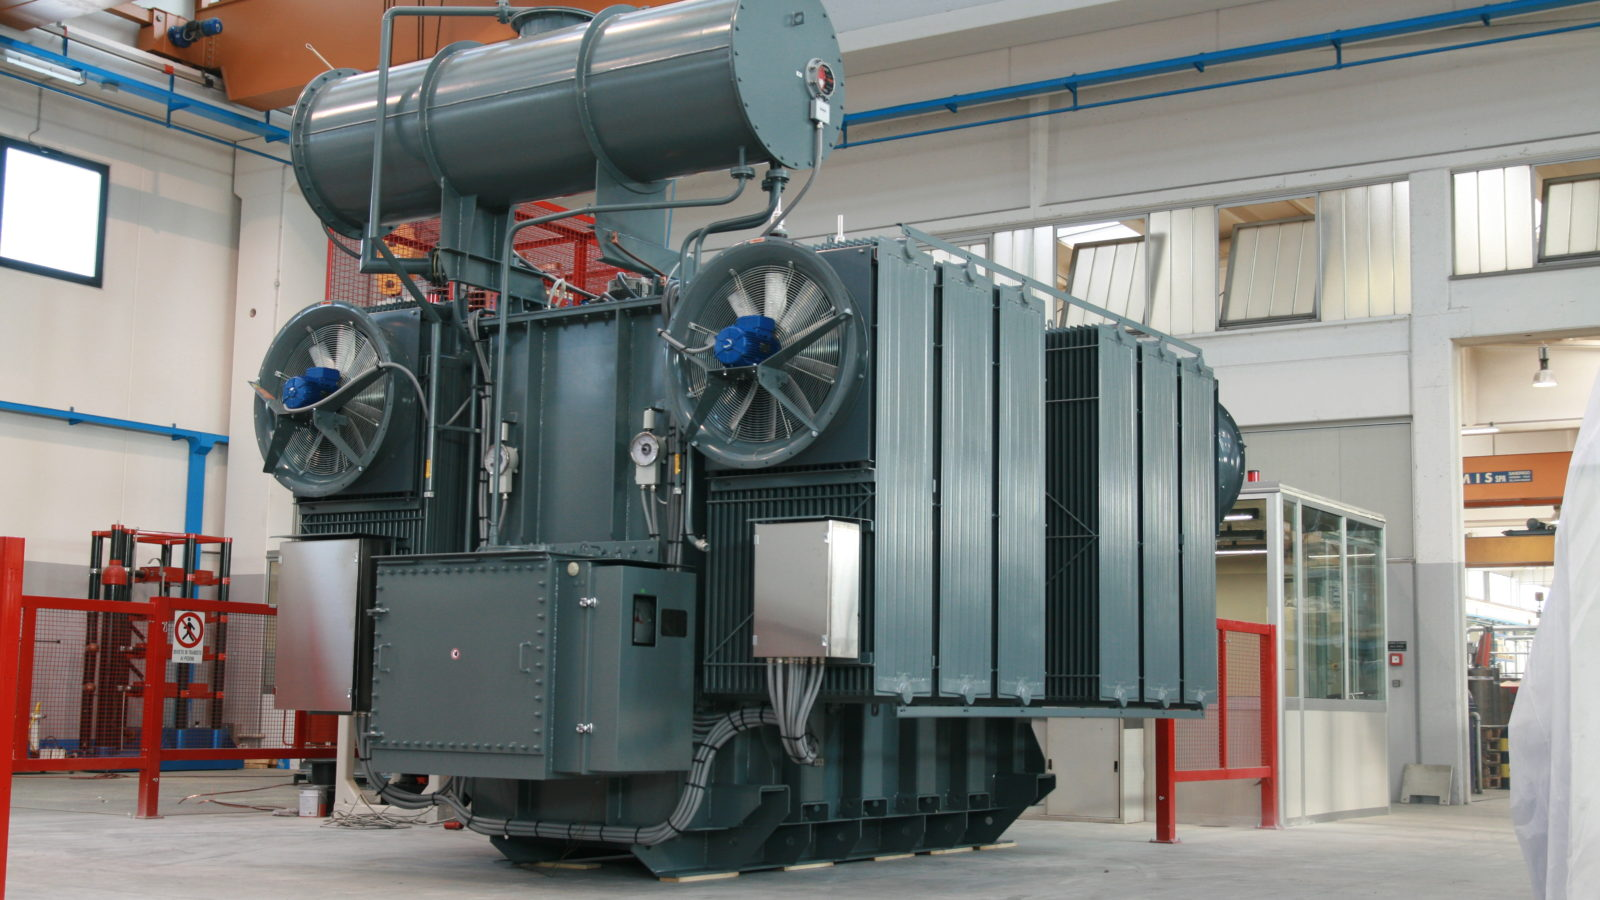 Oil power transformer with forced cooling system